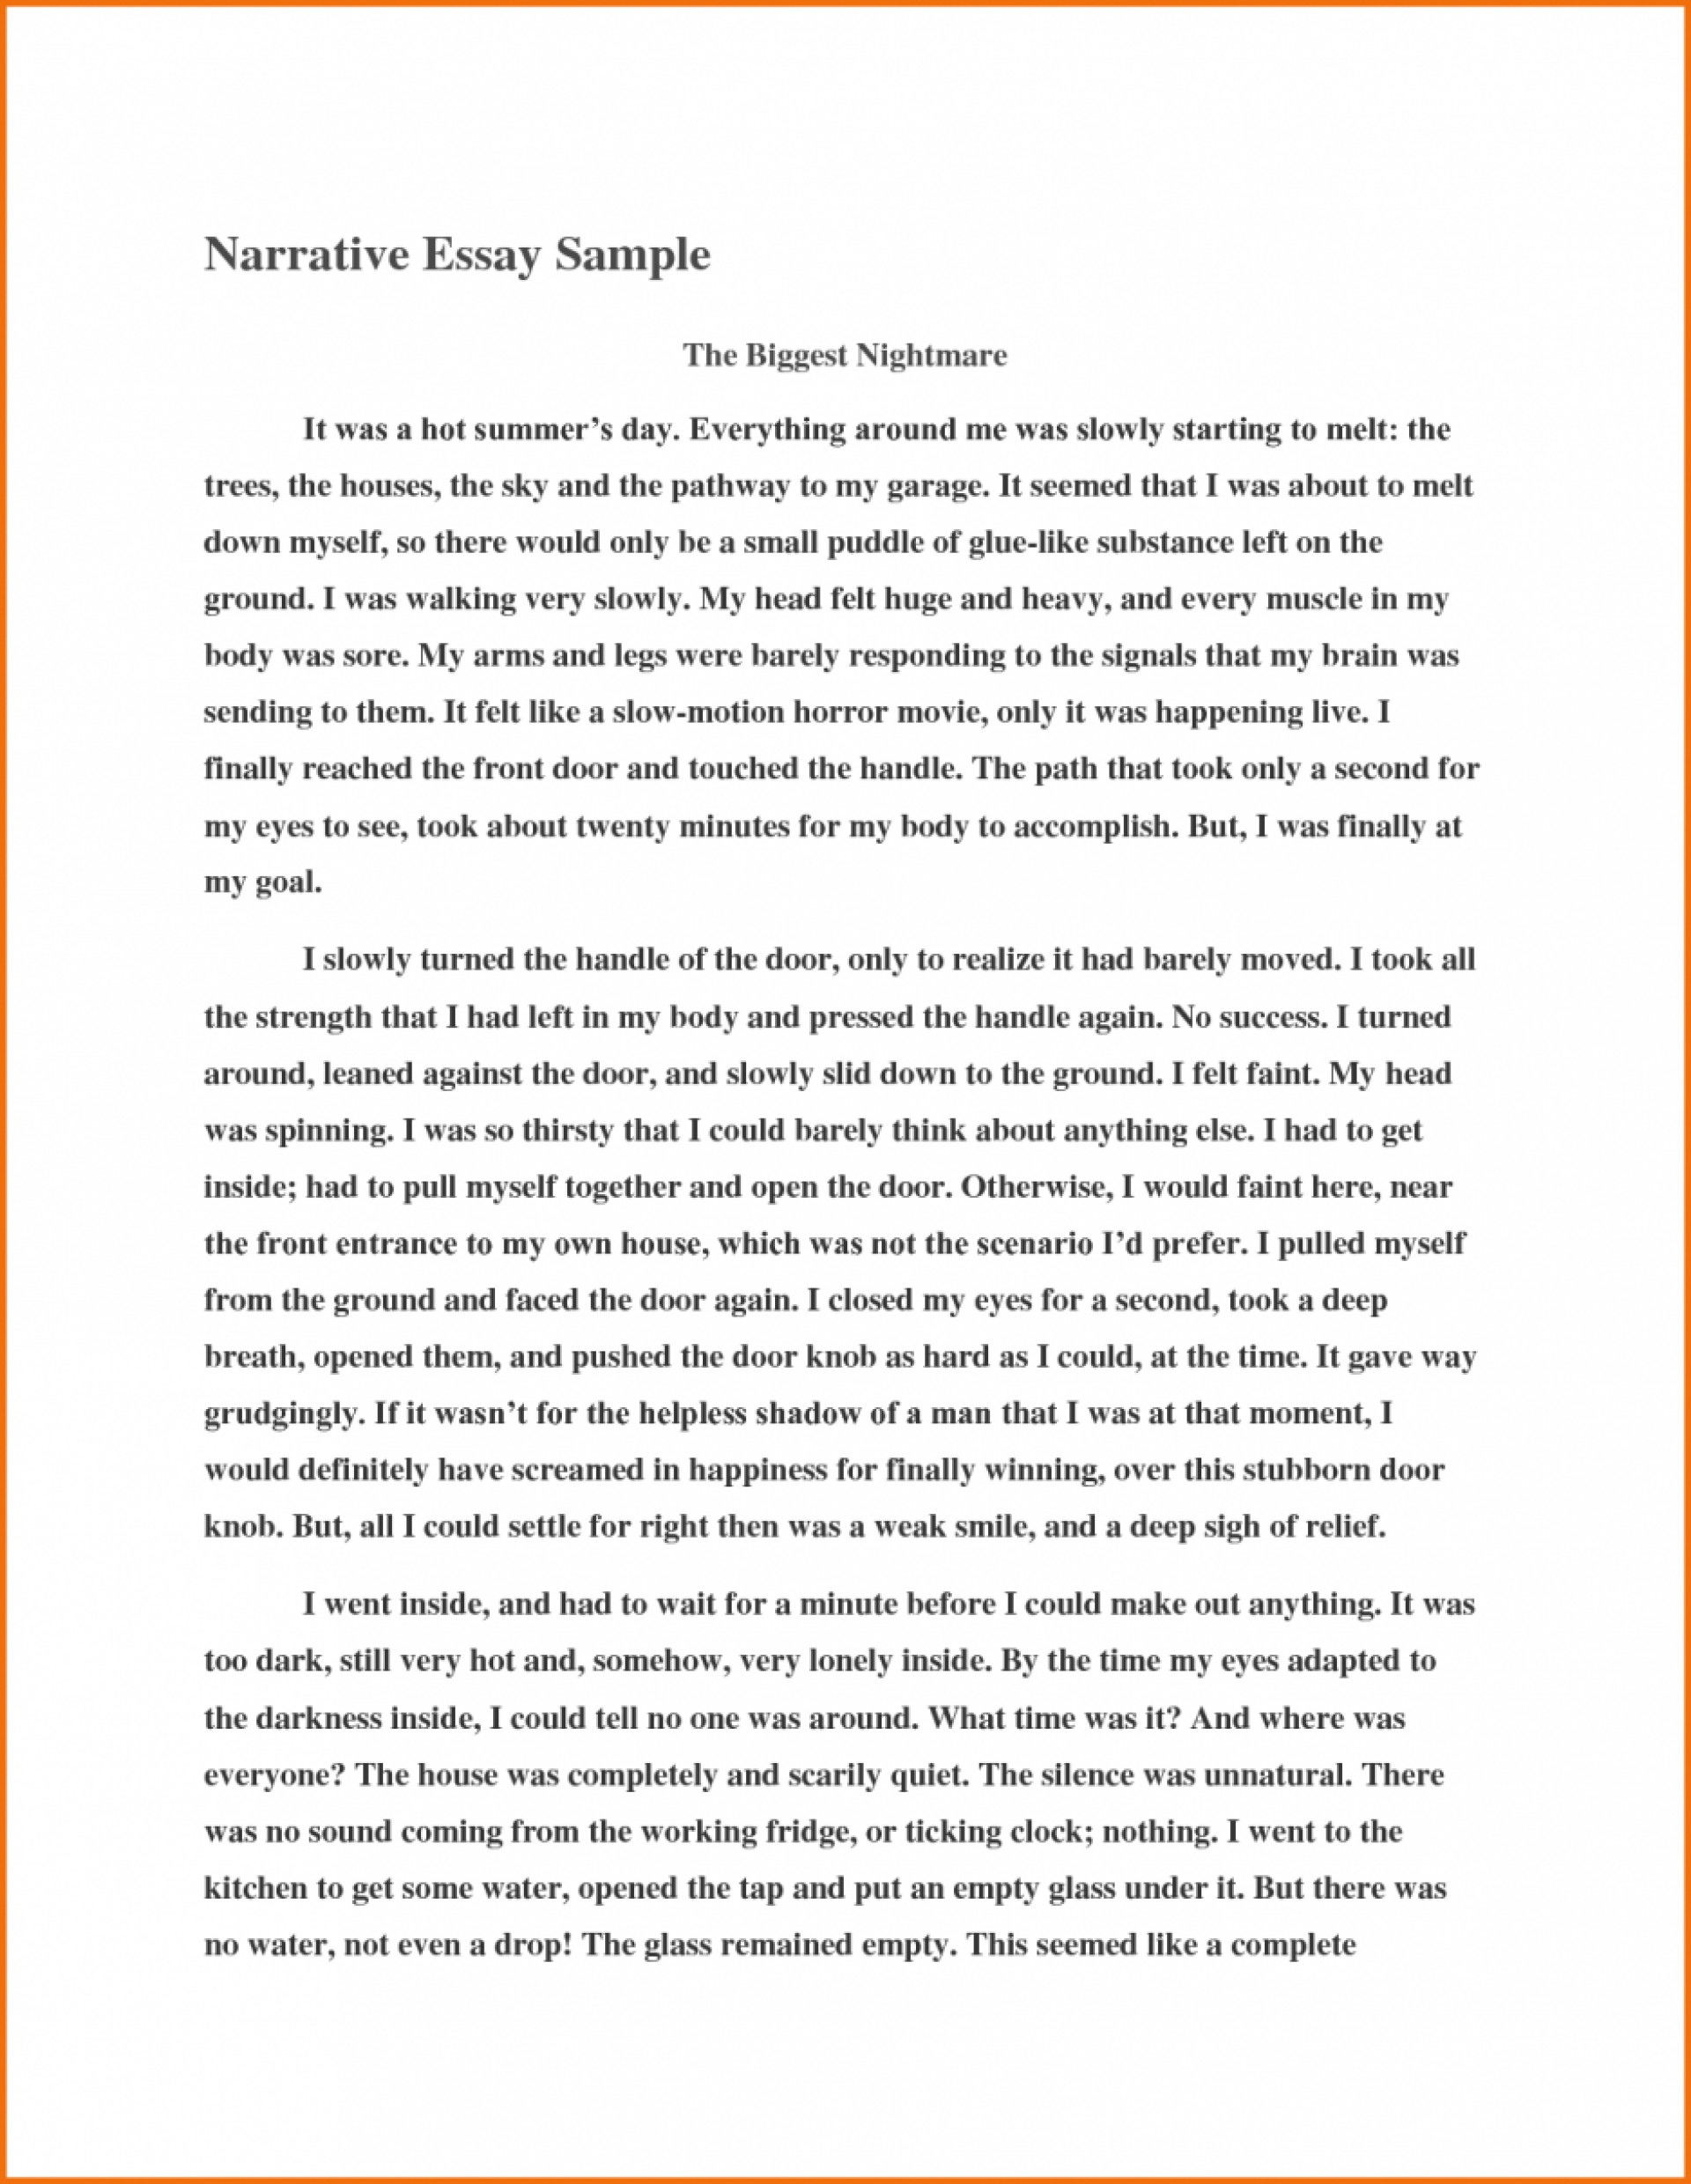 014 Essay Yourself Sample Essays About Examples Scholarship Tell Introduction Pdf Tumblr Mba Reflective Ideas Informative An In Spanish Metaphor Example Talk Write Narrative 936x1209 How Singular To A Short Myself Paper Without Using I 1920